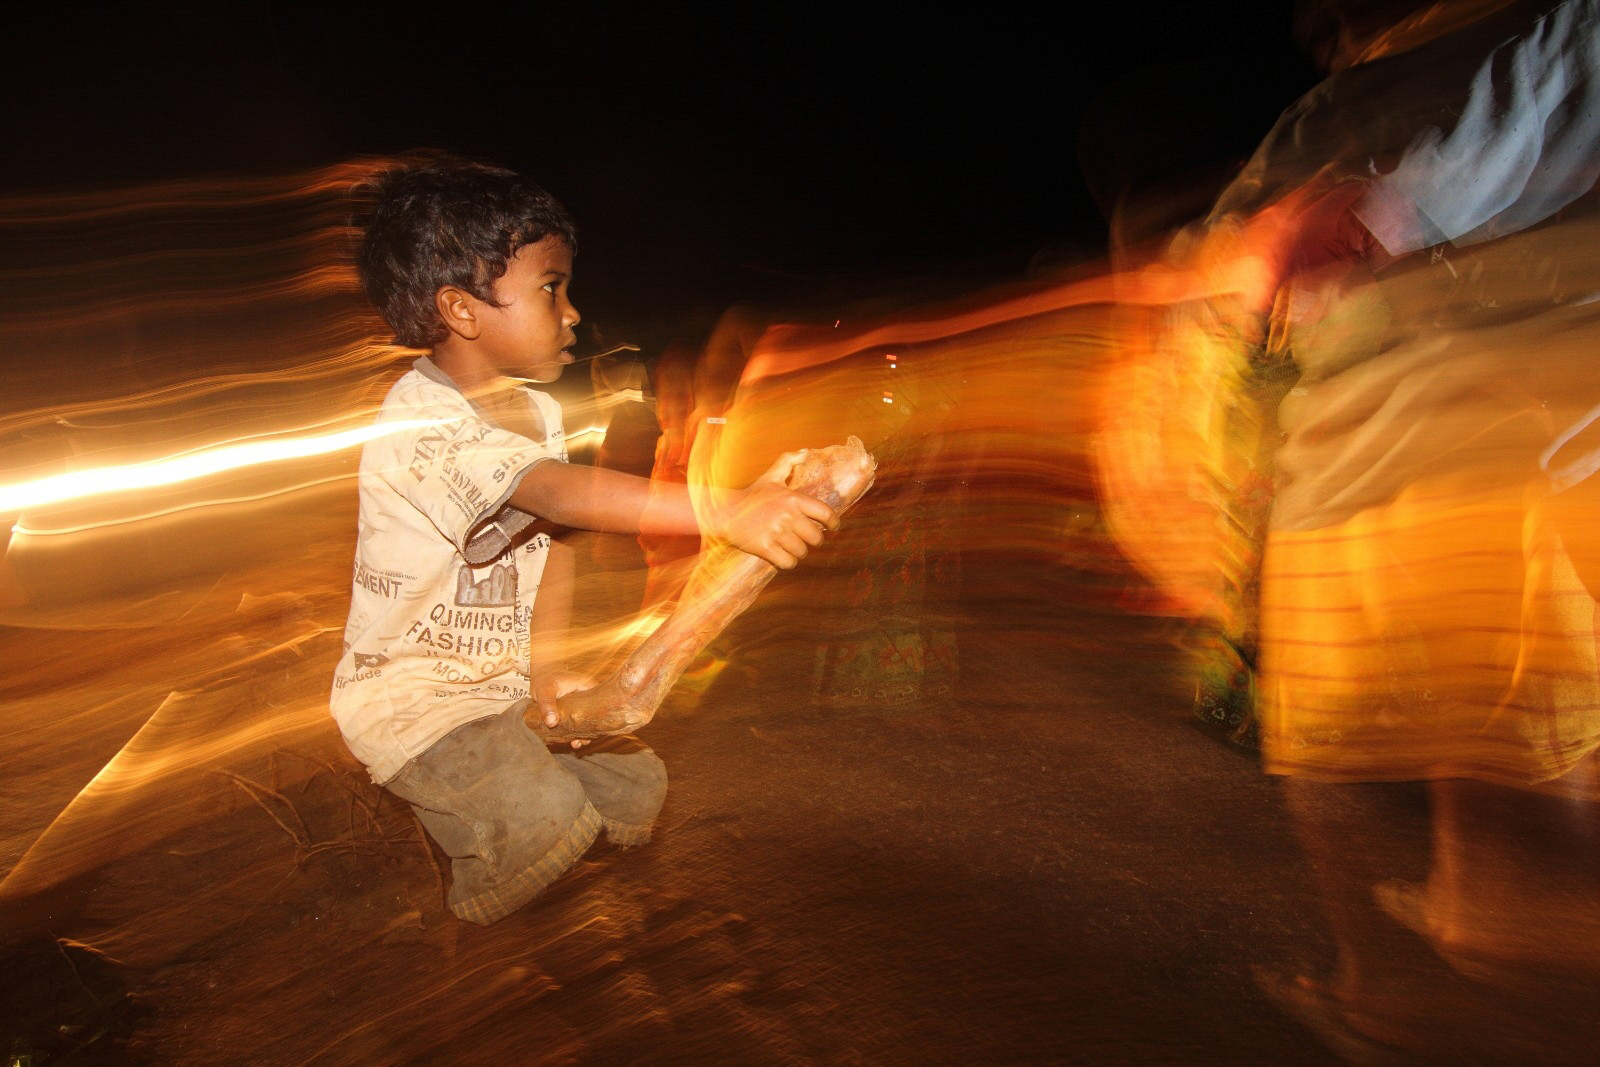 Santal dance form is the signature of purulia.Besides the festival the artists perform for the tourists.Our team was enjoying the vibe and some of us wandering around the crowd. I found the kid on the broken stem,watching the performance.To give a different effect without post processing I used flash in slow shutter speed.